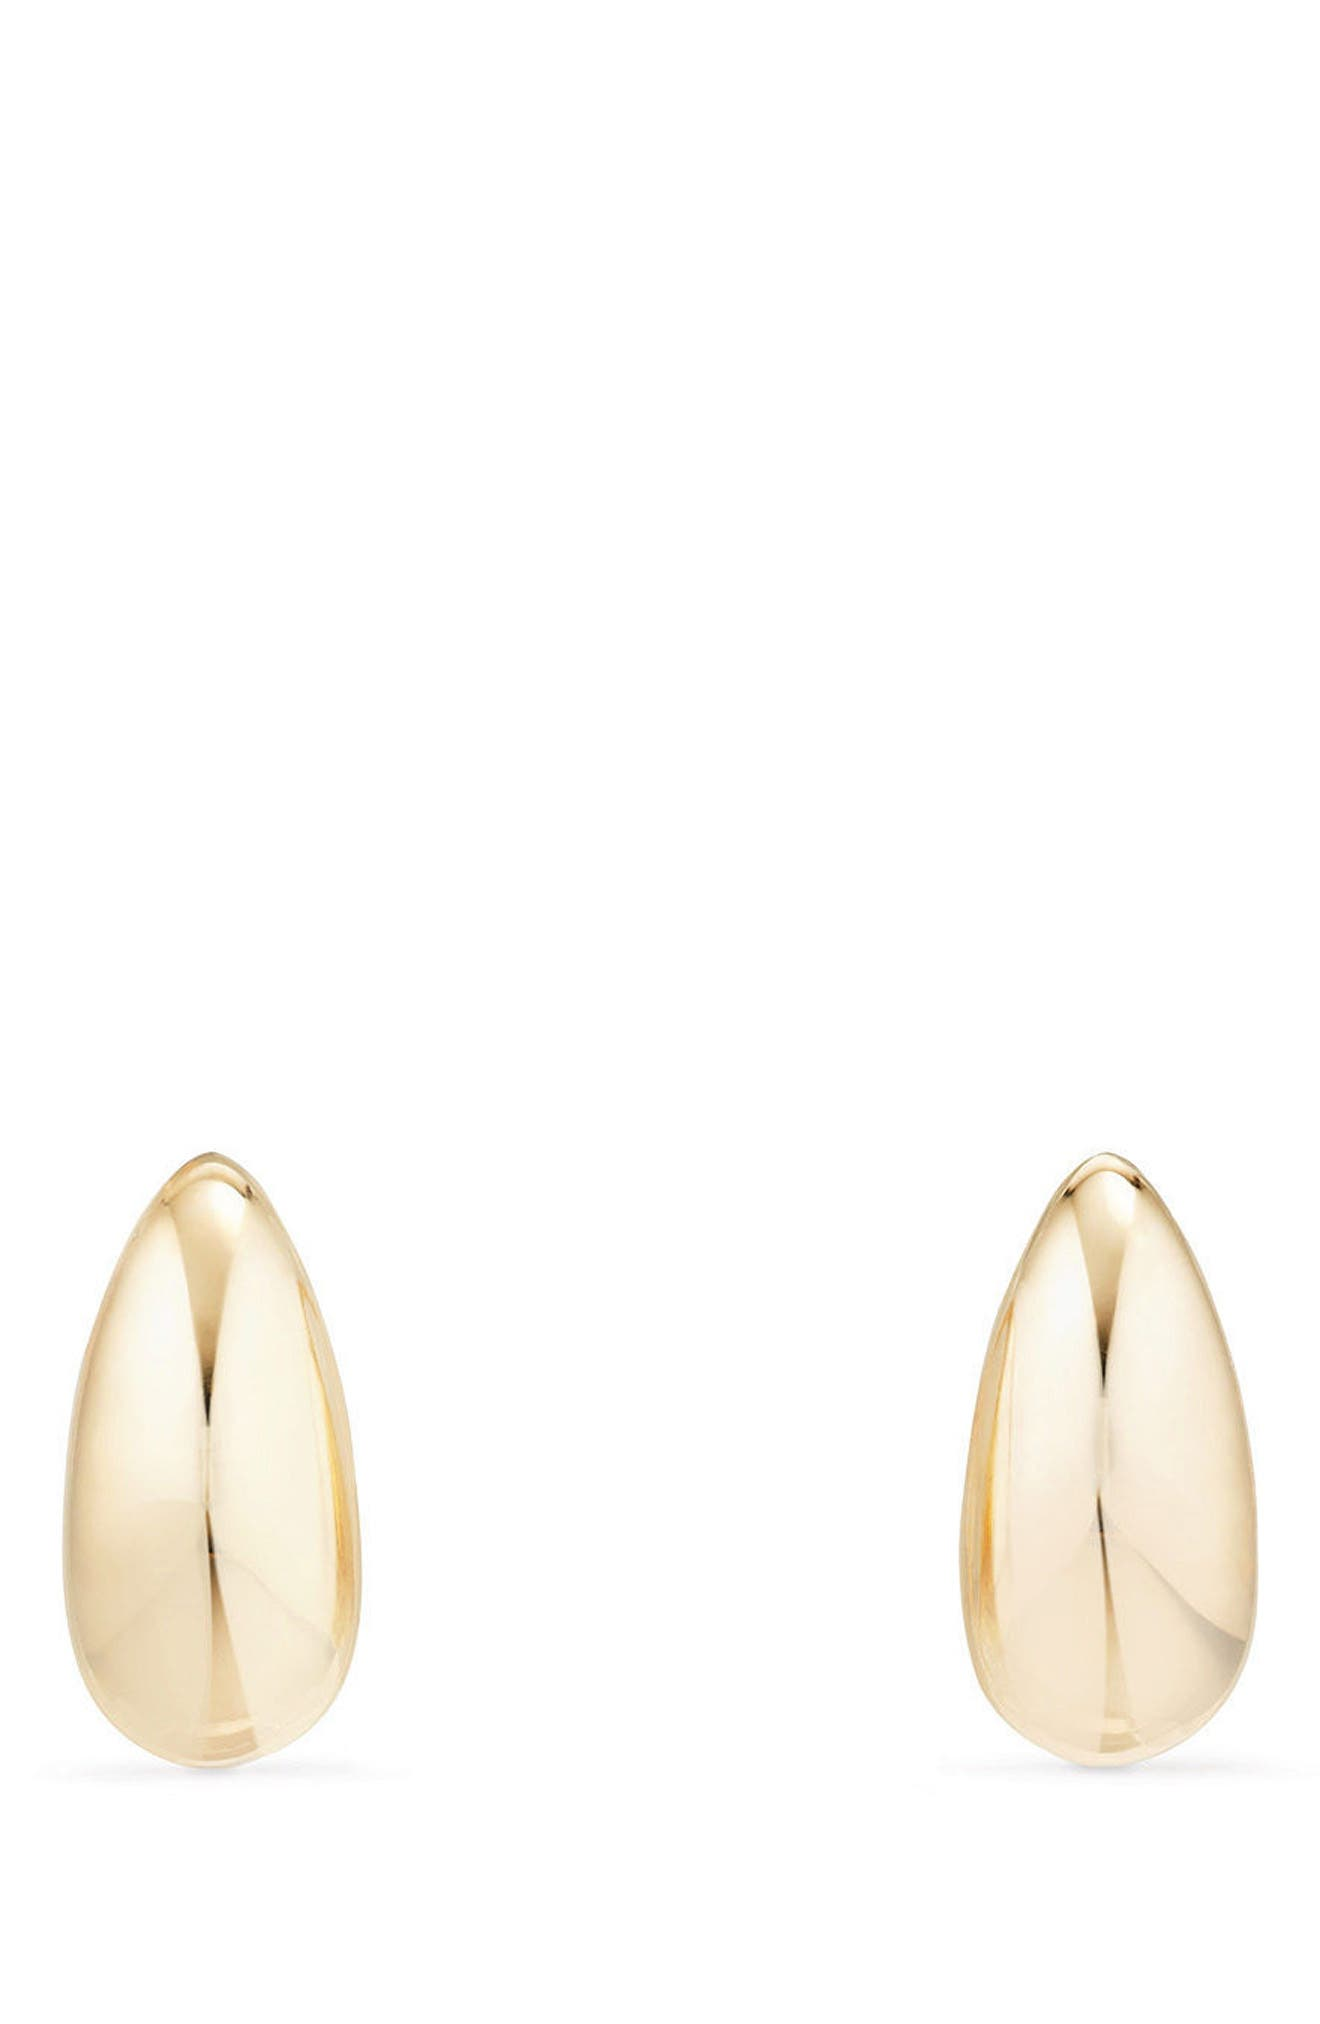 Pure Form Pod Earrings with Diamonds in 18K Gold, 15mm,                         Main,                         color, YELLOW GOLD